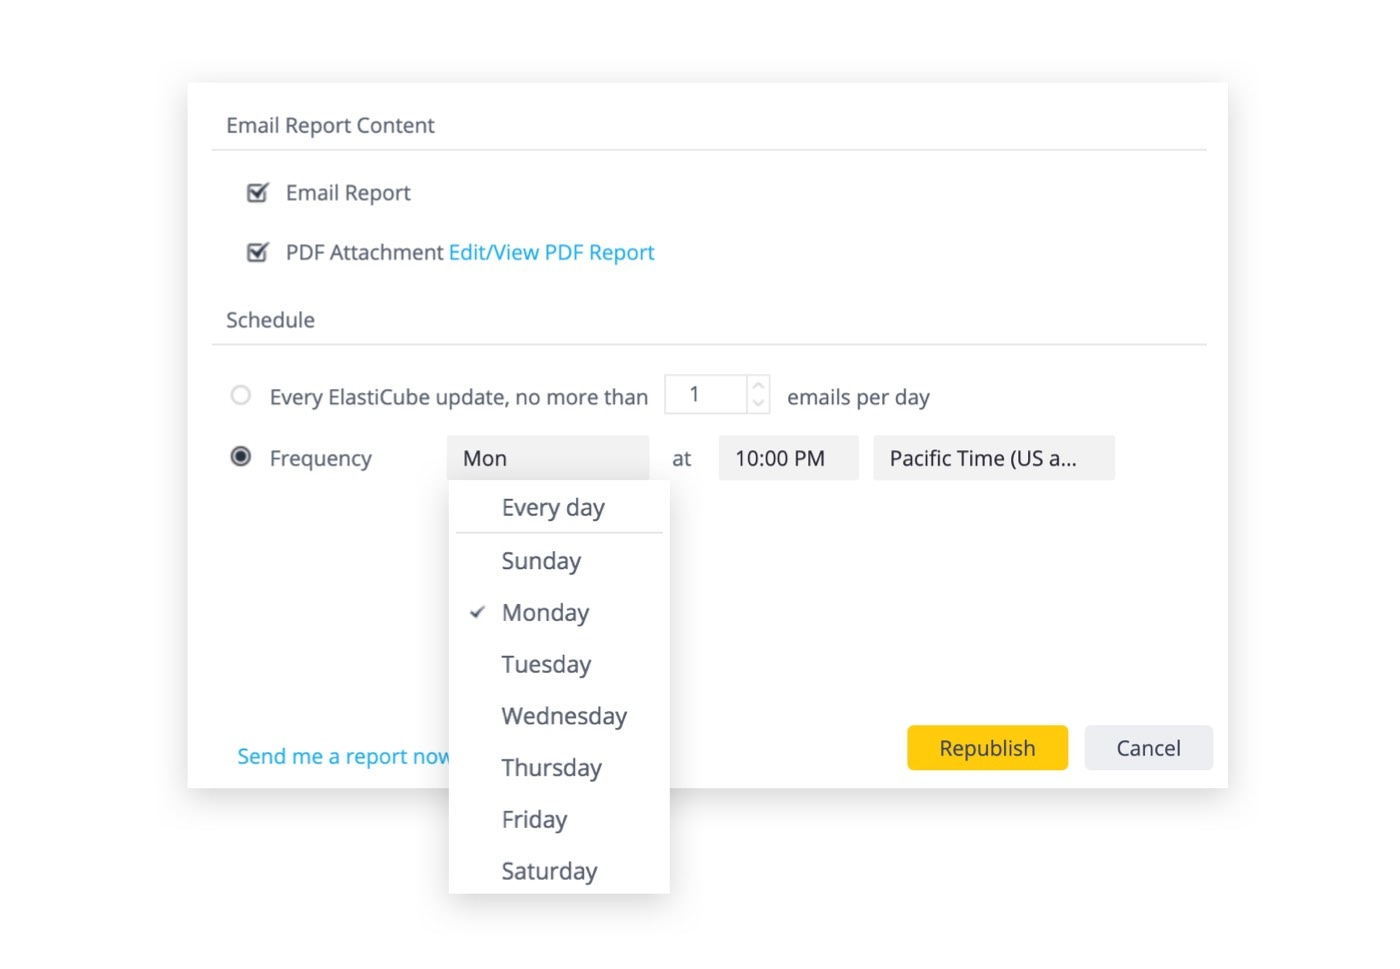 A pop-up window that shows settings for automatically sending report emails, including email report content and frequency of scheduling.